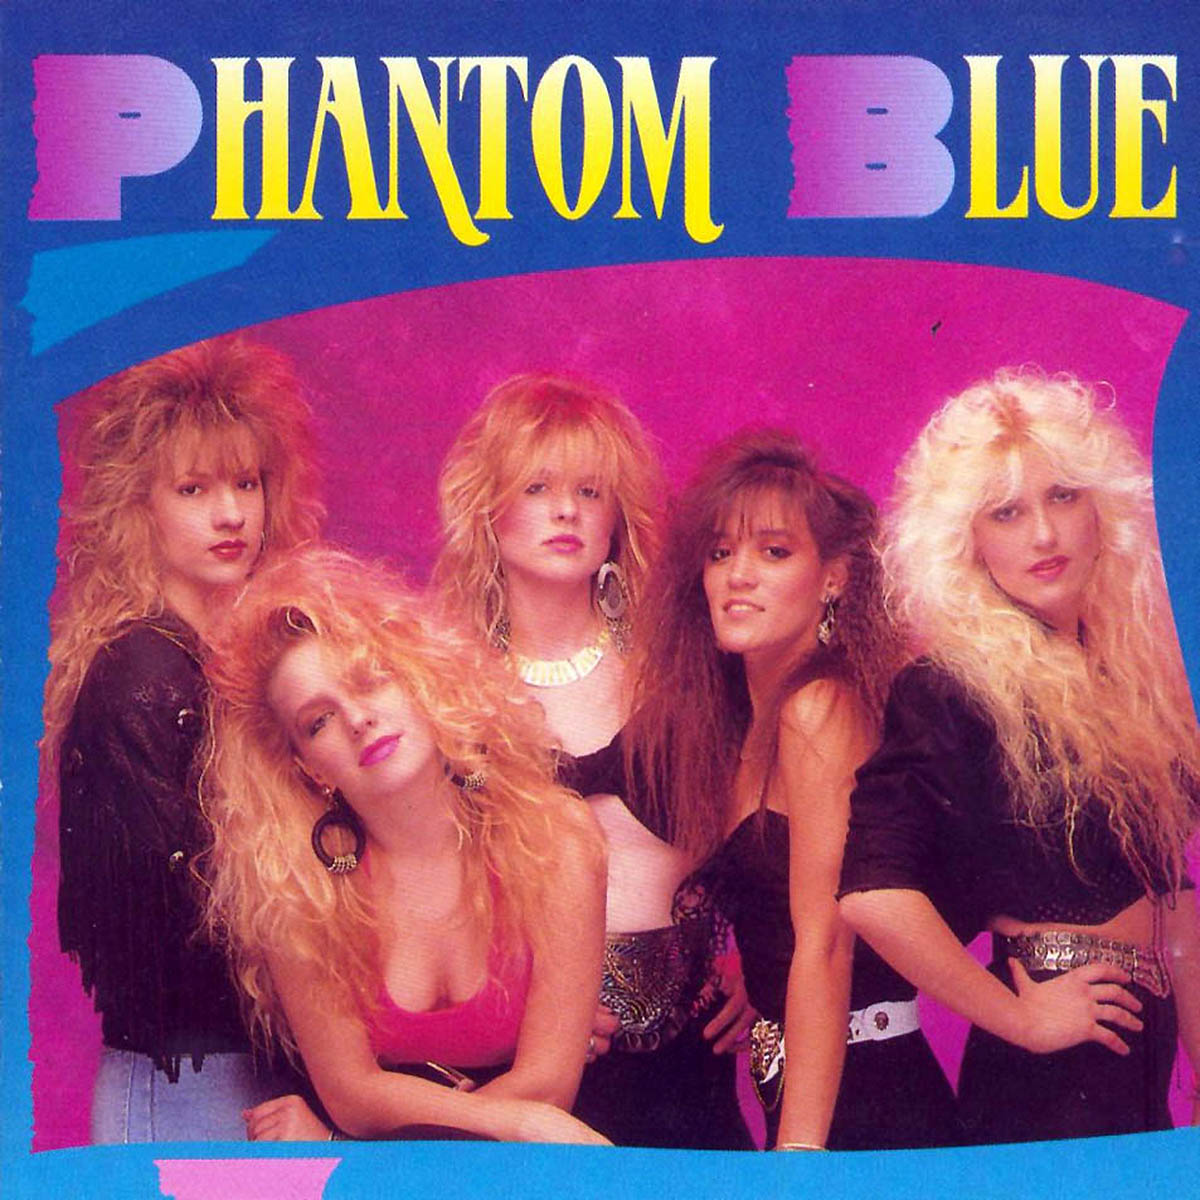 phantom-blue